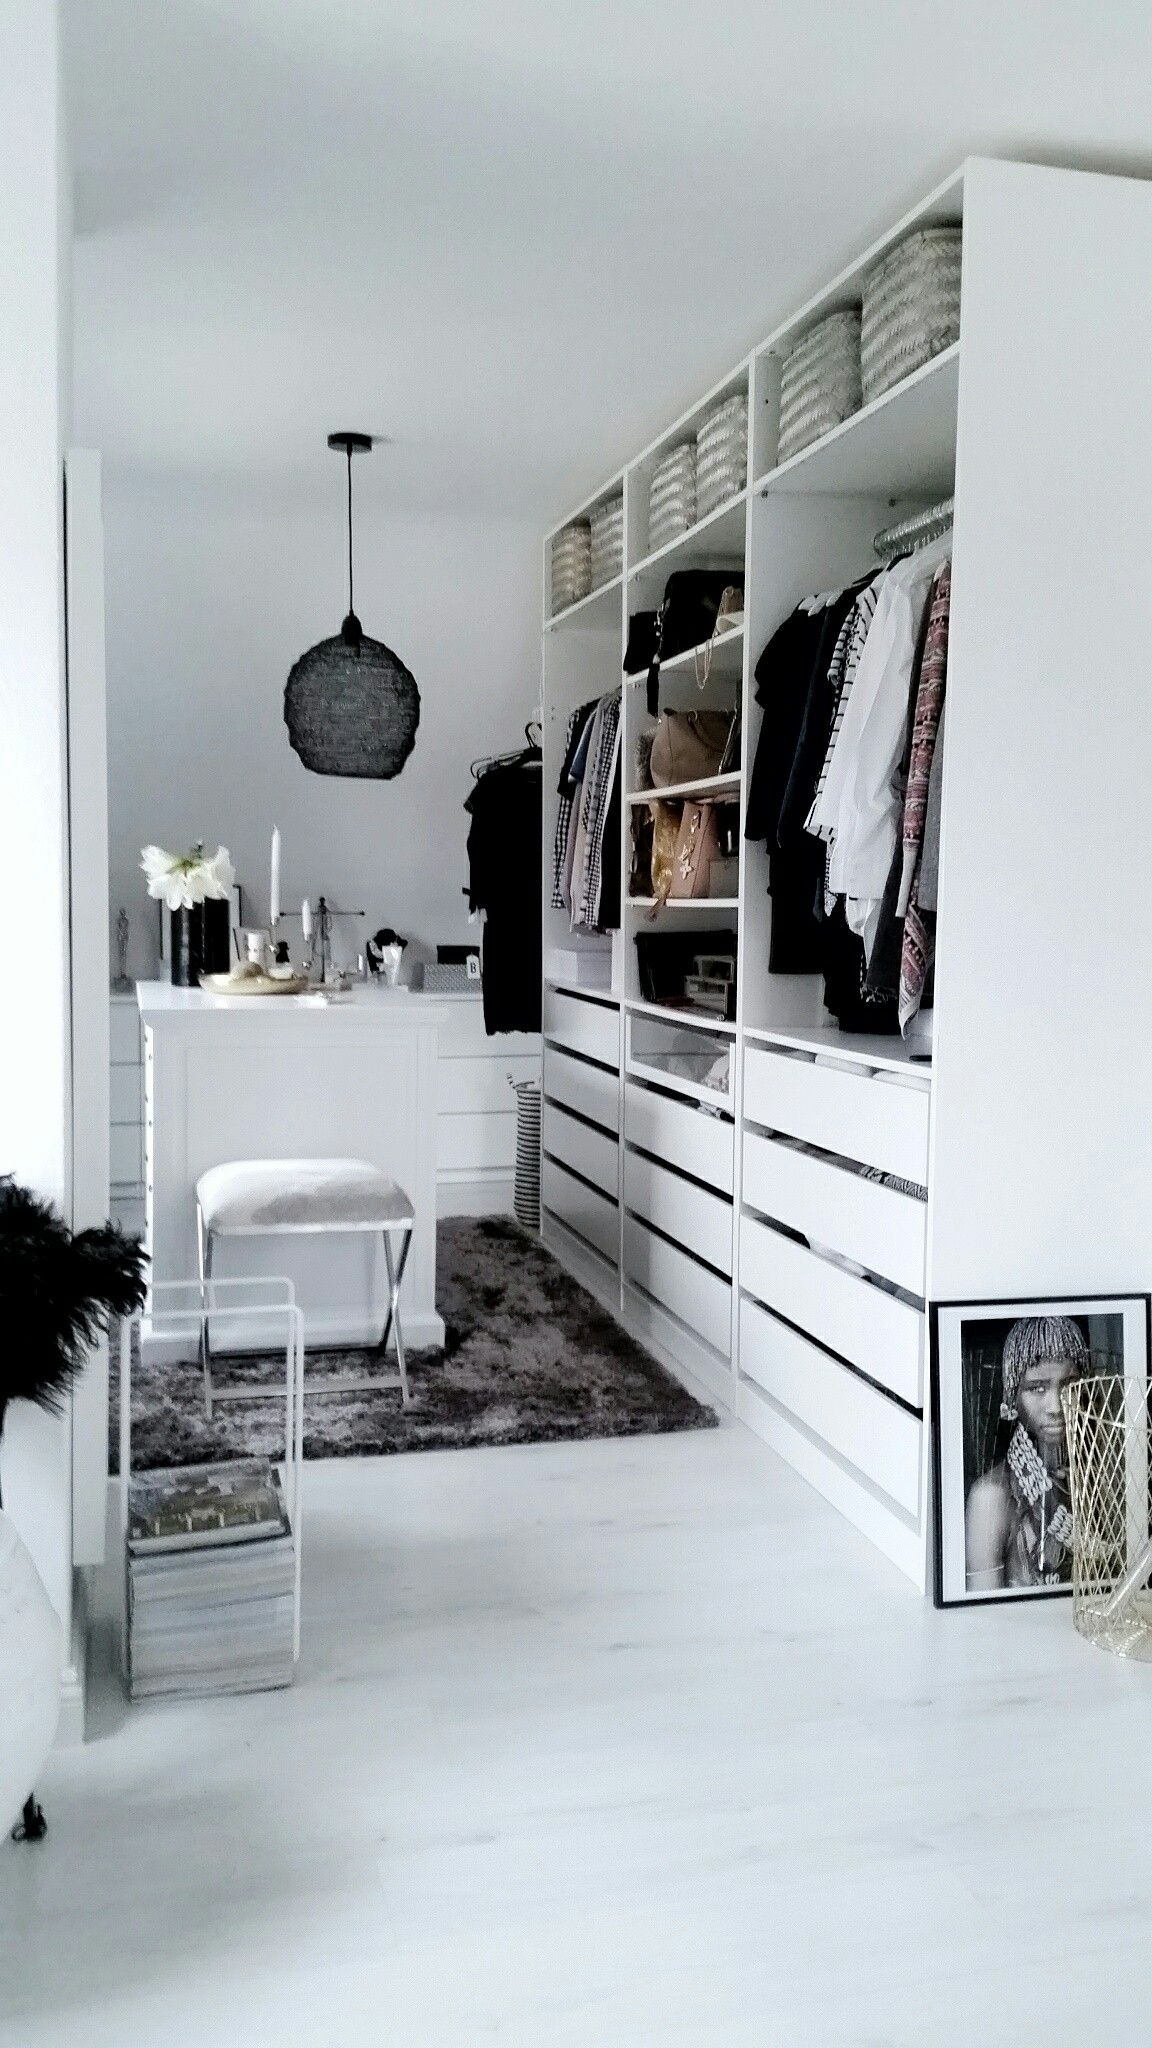 Ikea pax ankleidezimmer inspiration weiss dressing room for Dressing room ideas ikea